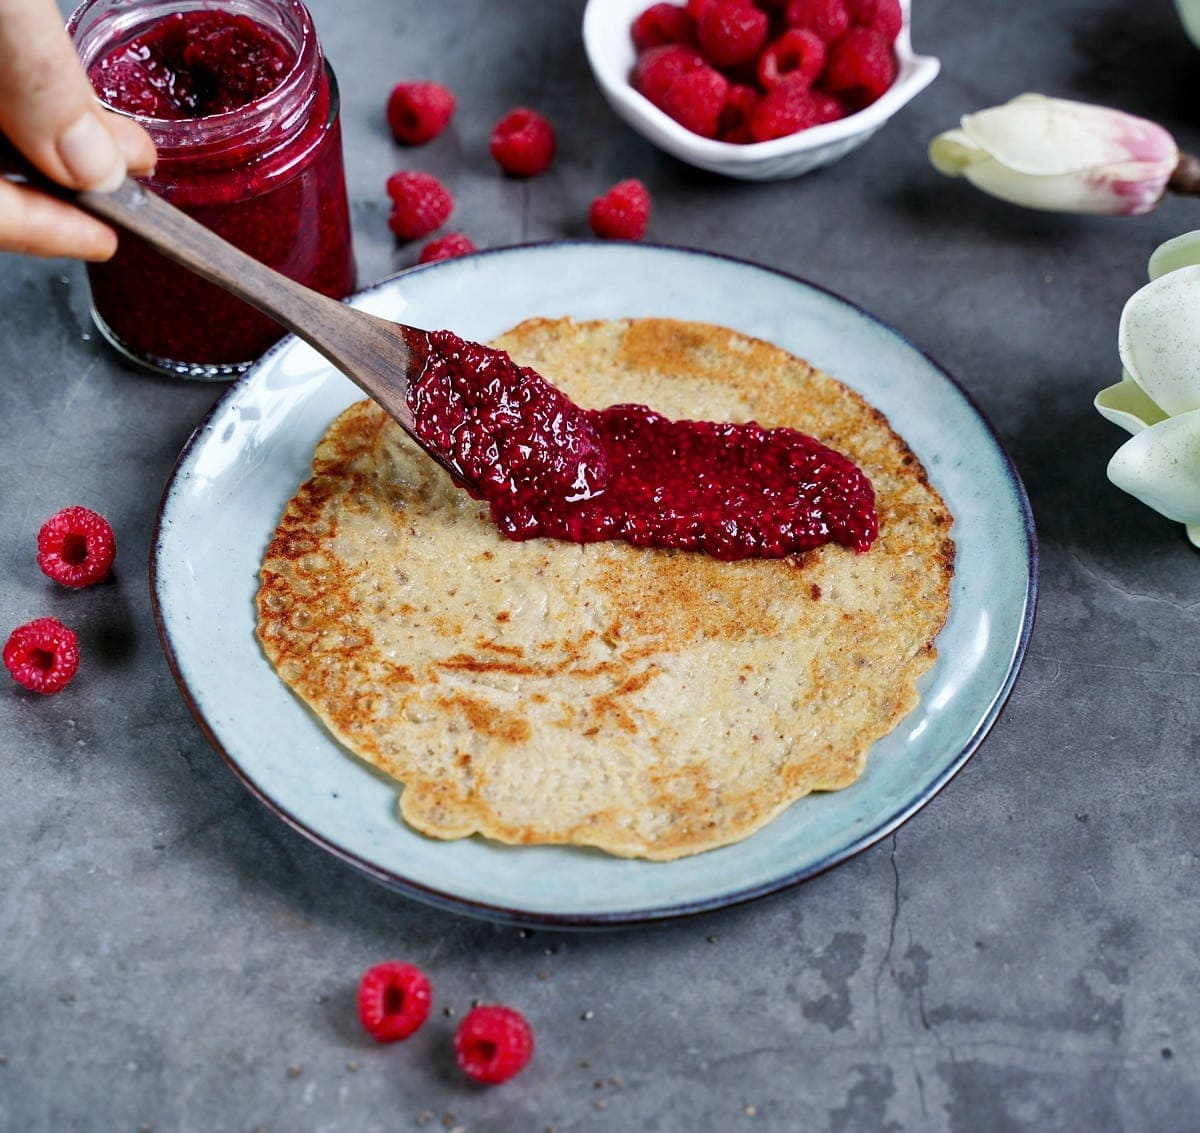 a crepe on a plate with homemade jelly made from rasperries